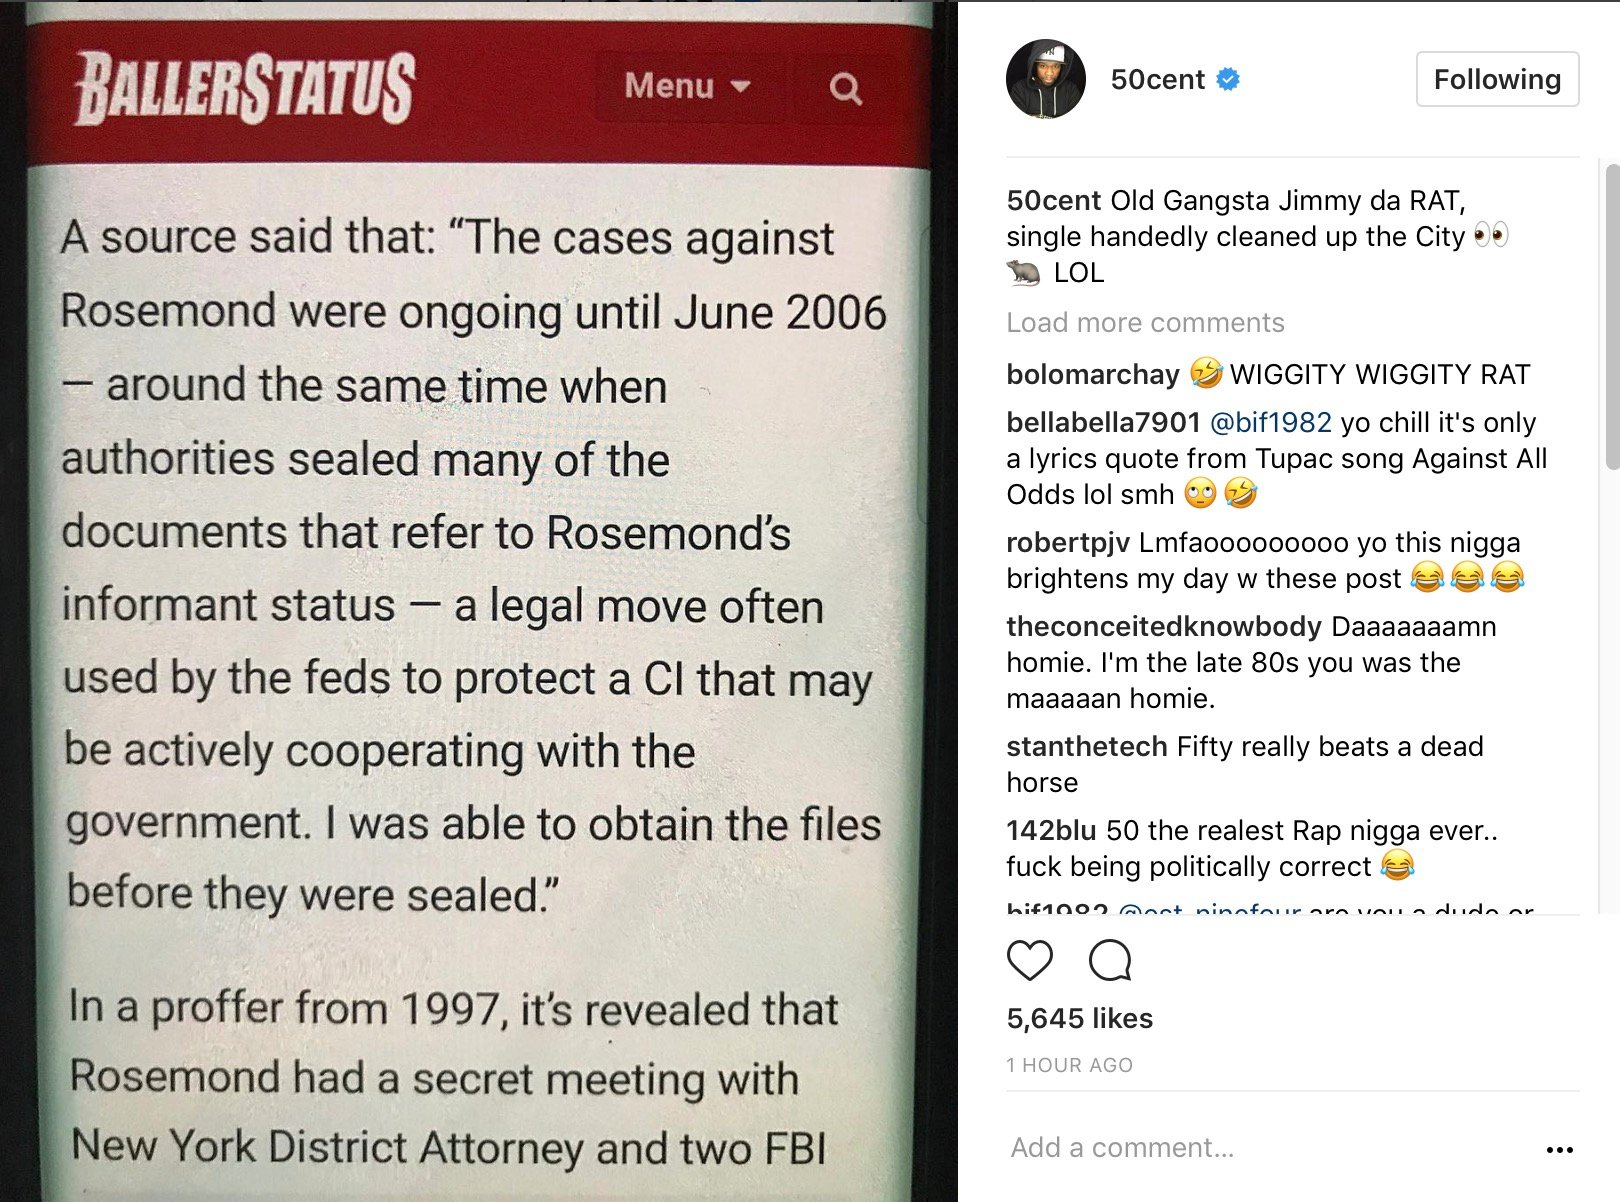 50 Cent Once Again Flames Jimmy Henchman W/ Rat Accusations: